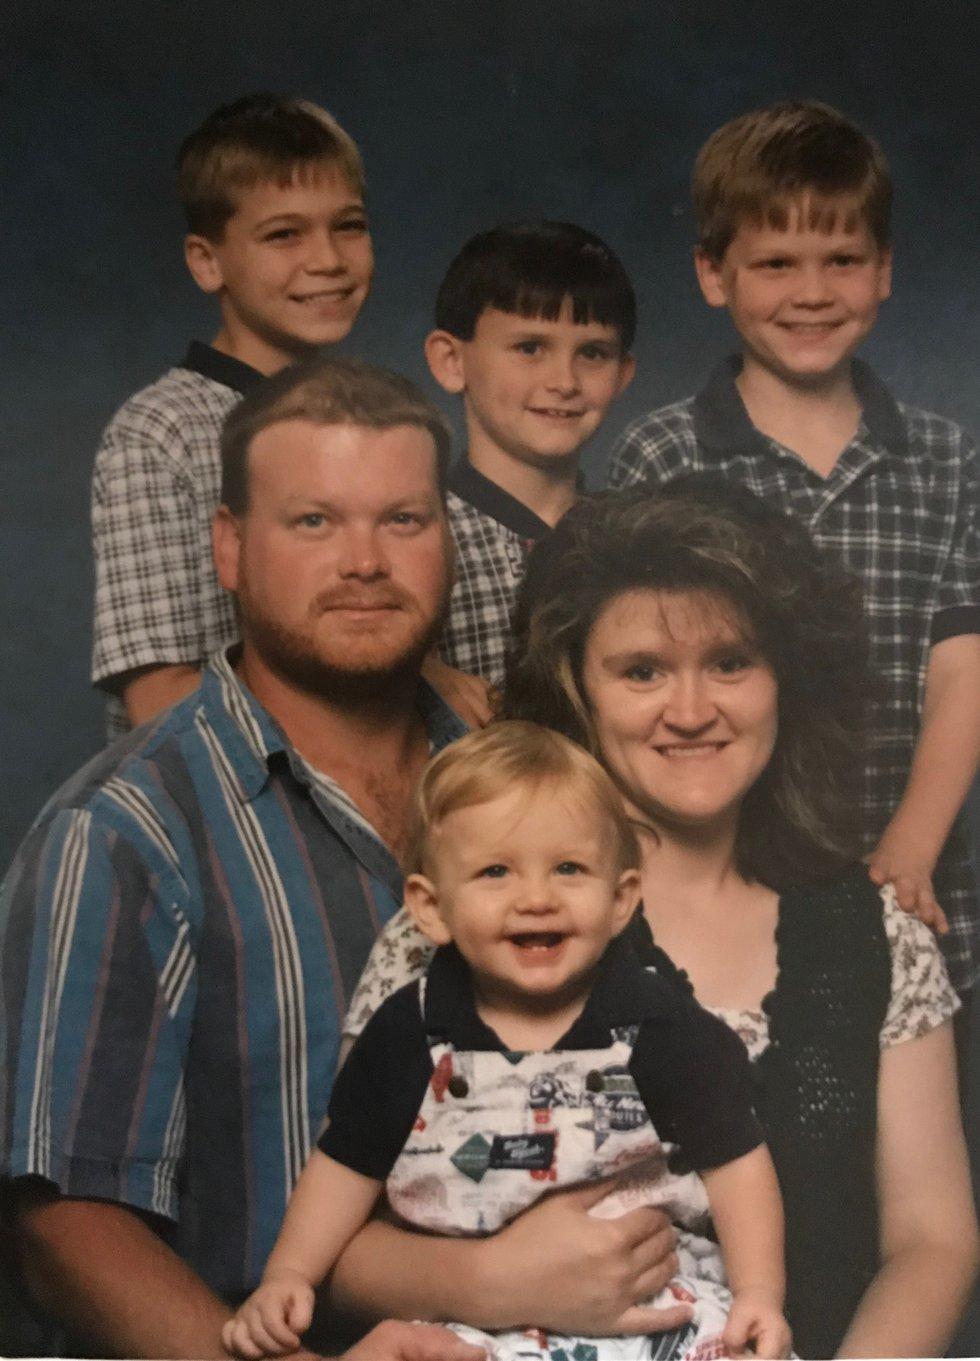 A Holmes family photo. Matt is far right, with his hand on Theresa's shoulder.